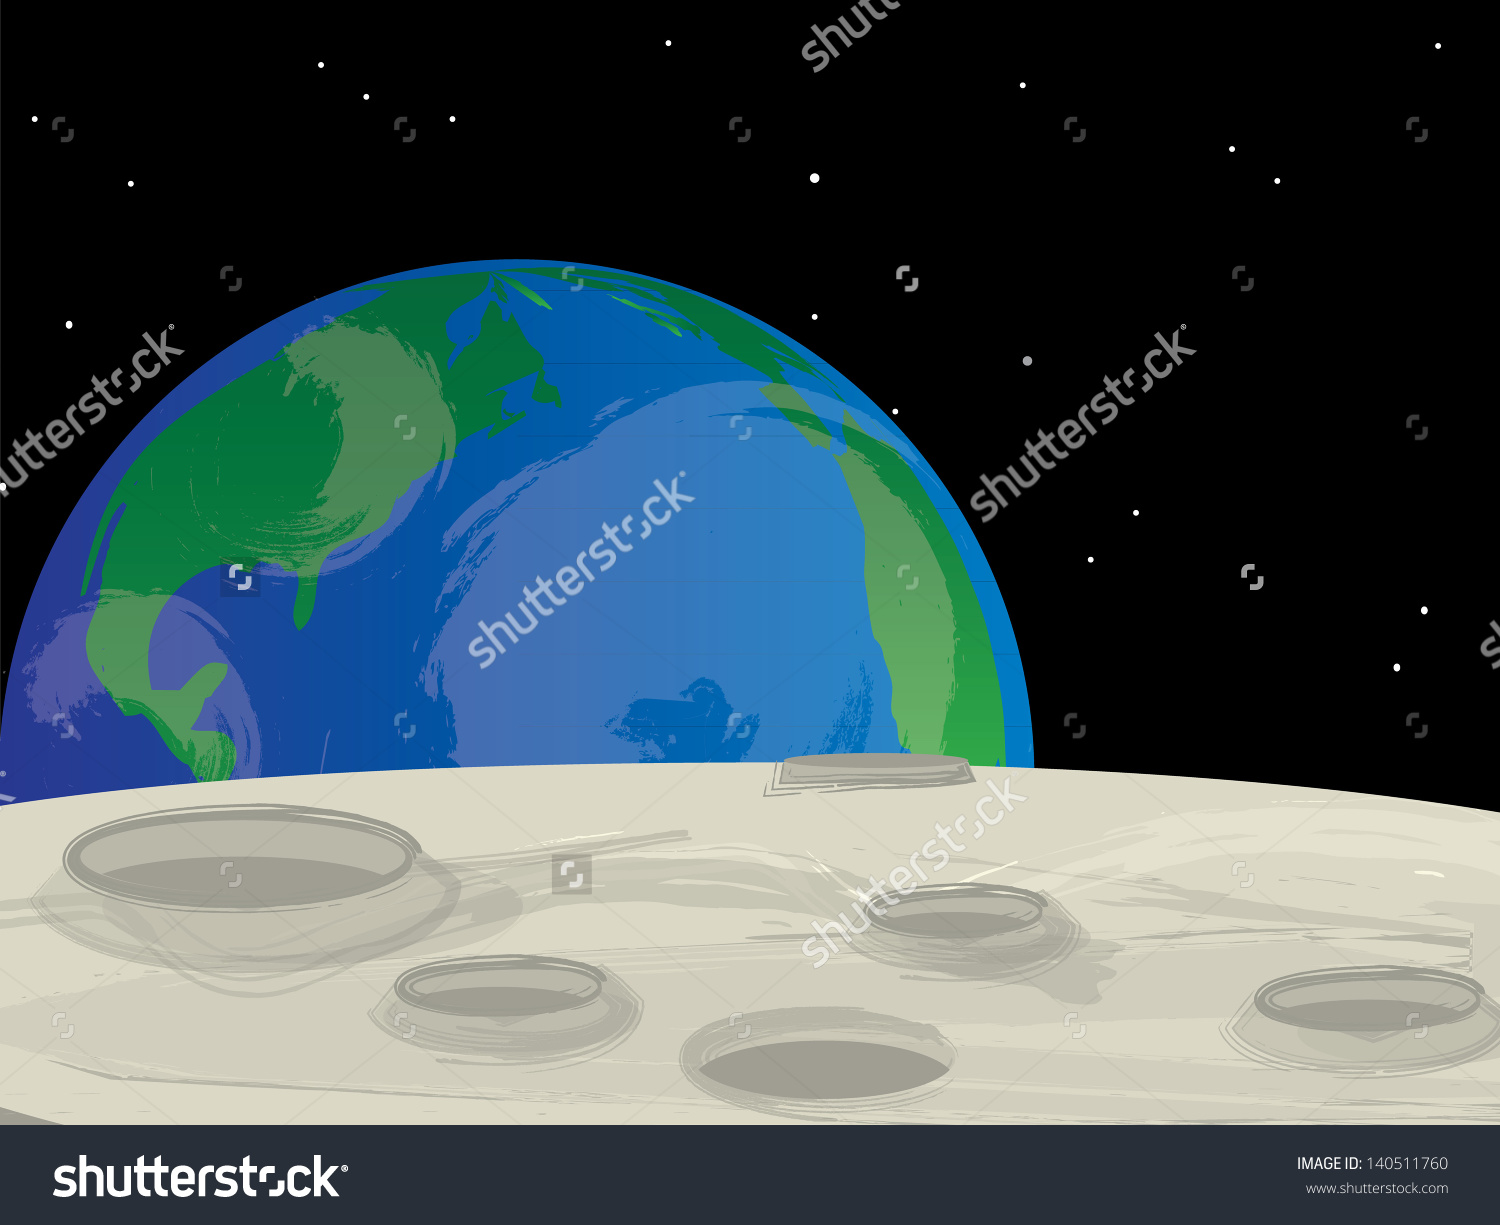 Moon surface clipart.